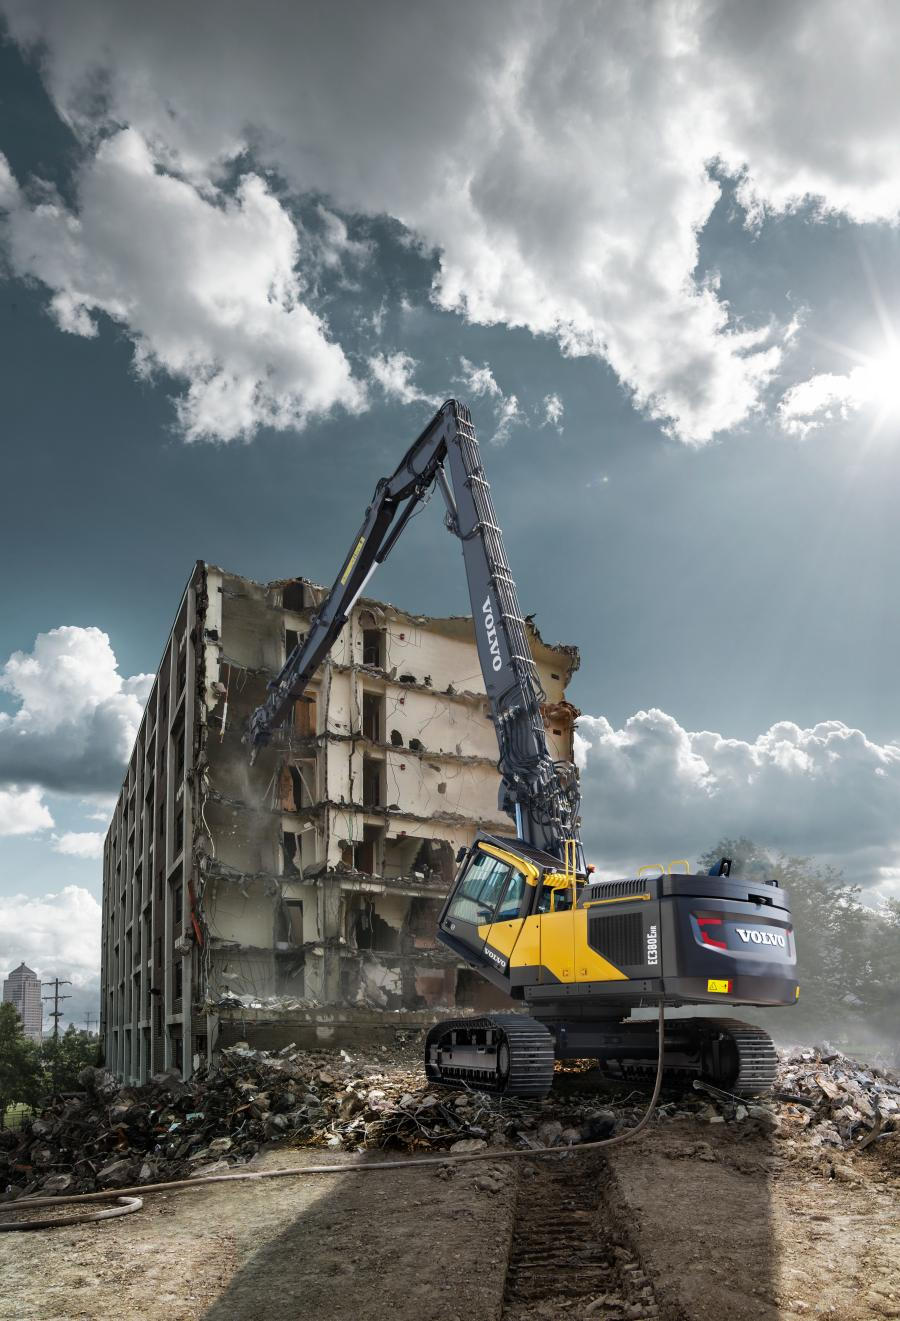 The Volvo Lifetime Frame and Structure Warranty now includes high-reach demolition excavators and wheeled excavators.